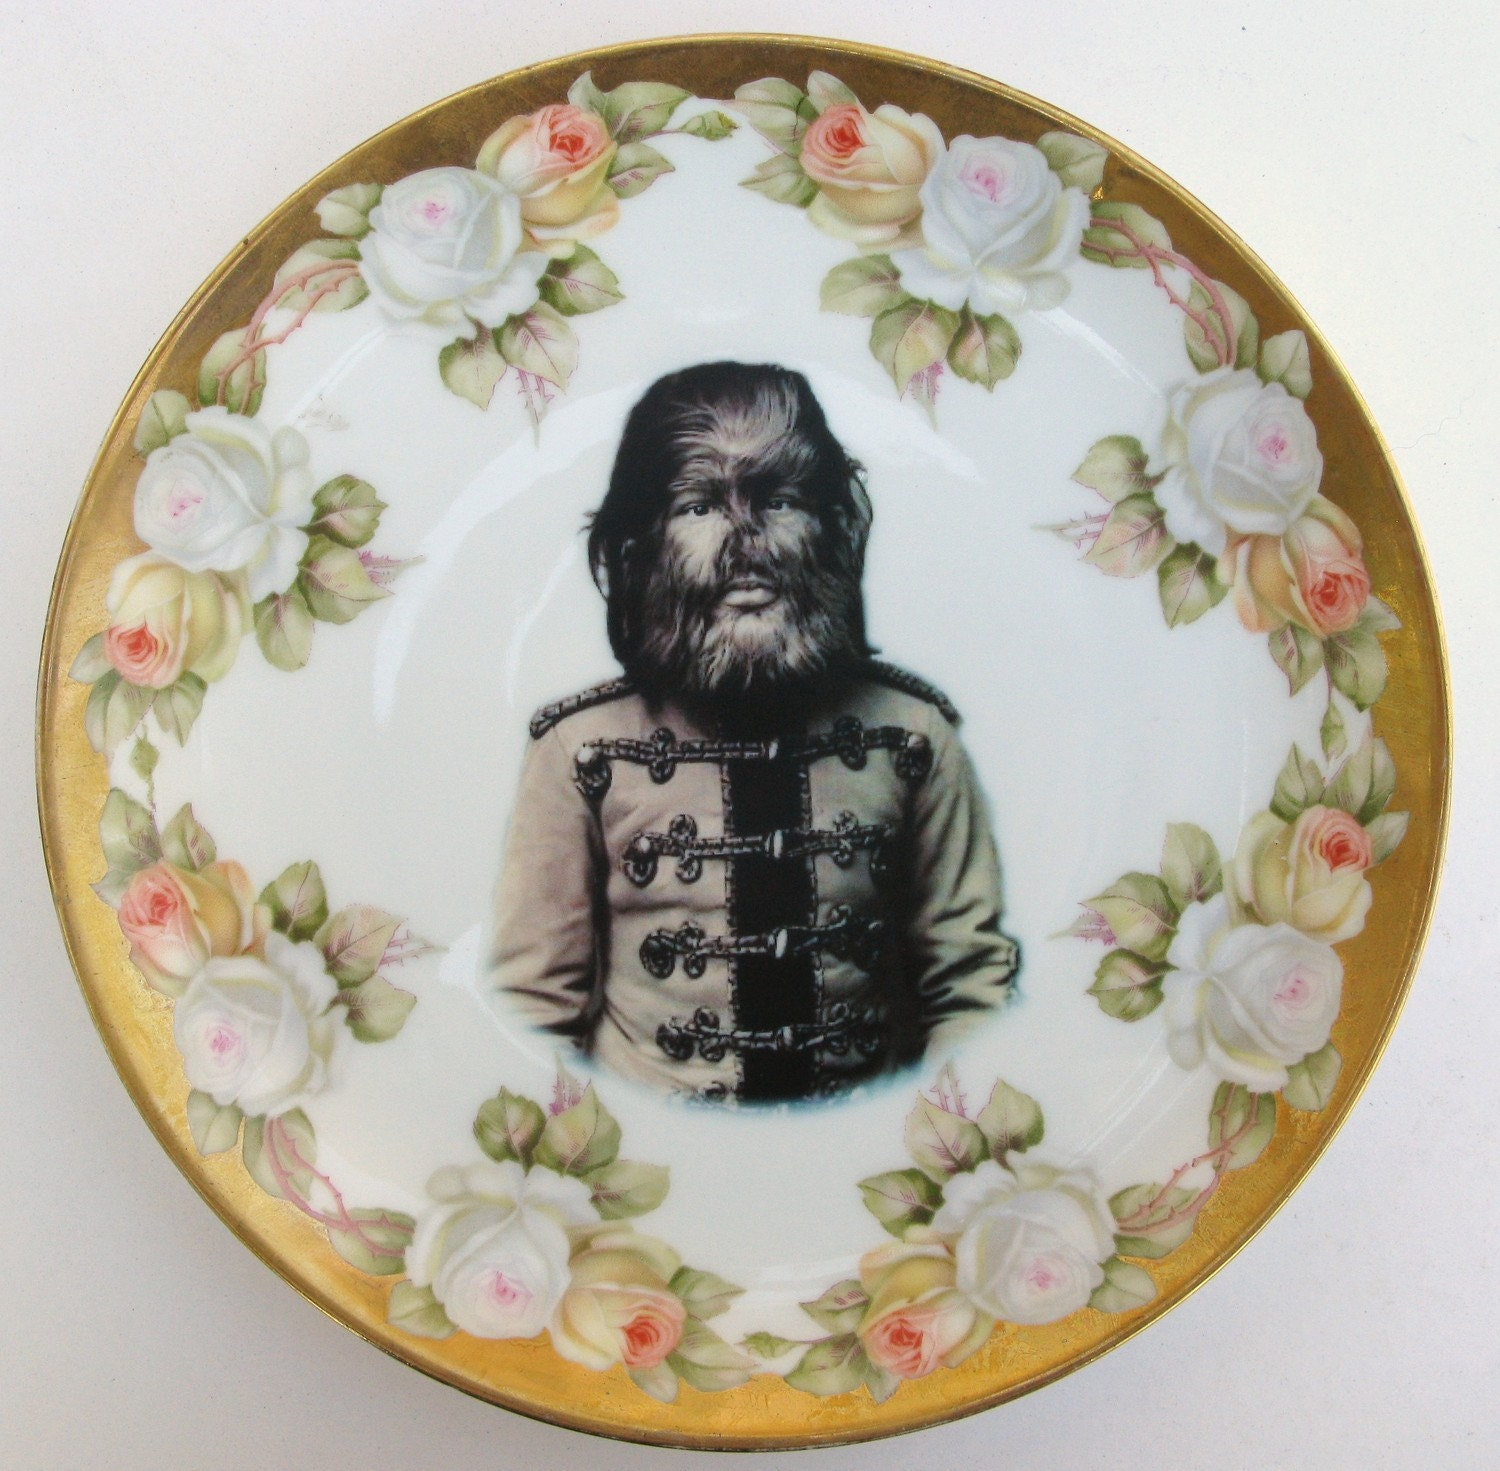 JoJo The Dog Faced Boy - Altered Antique Plate